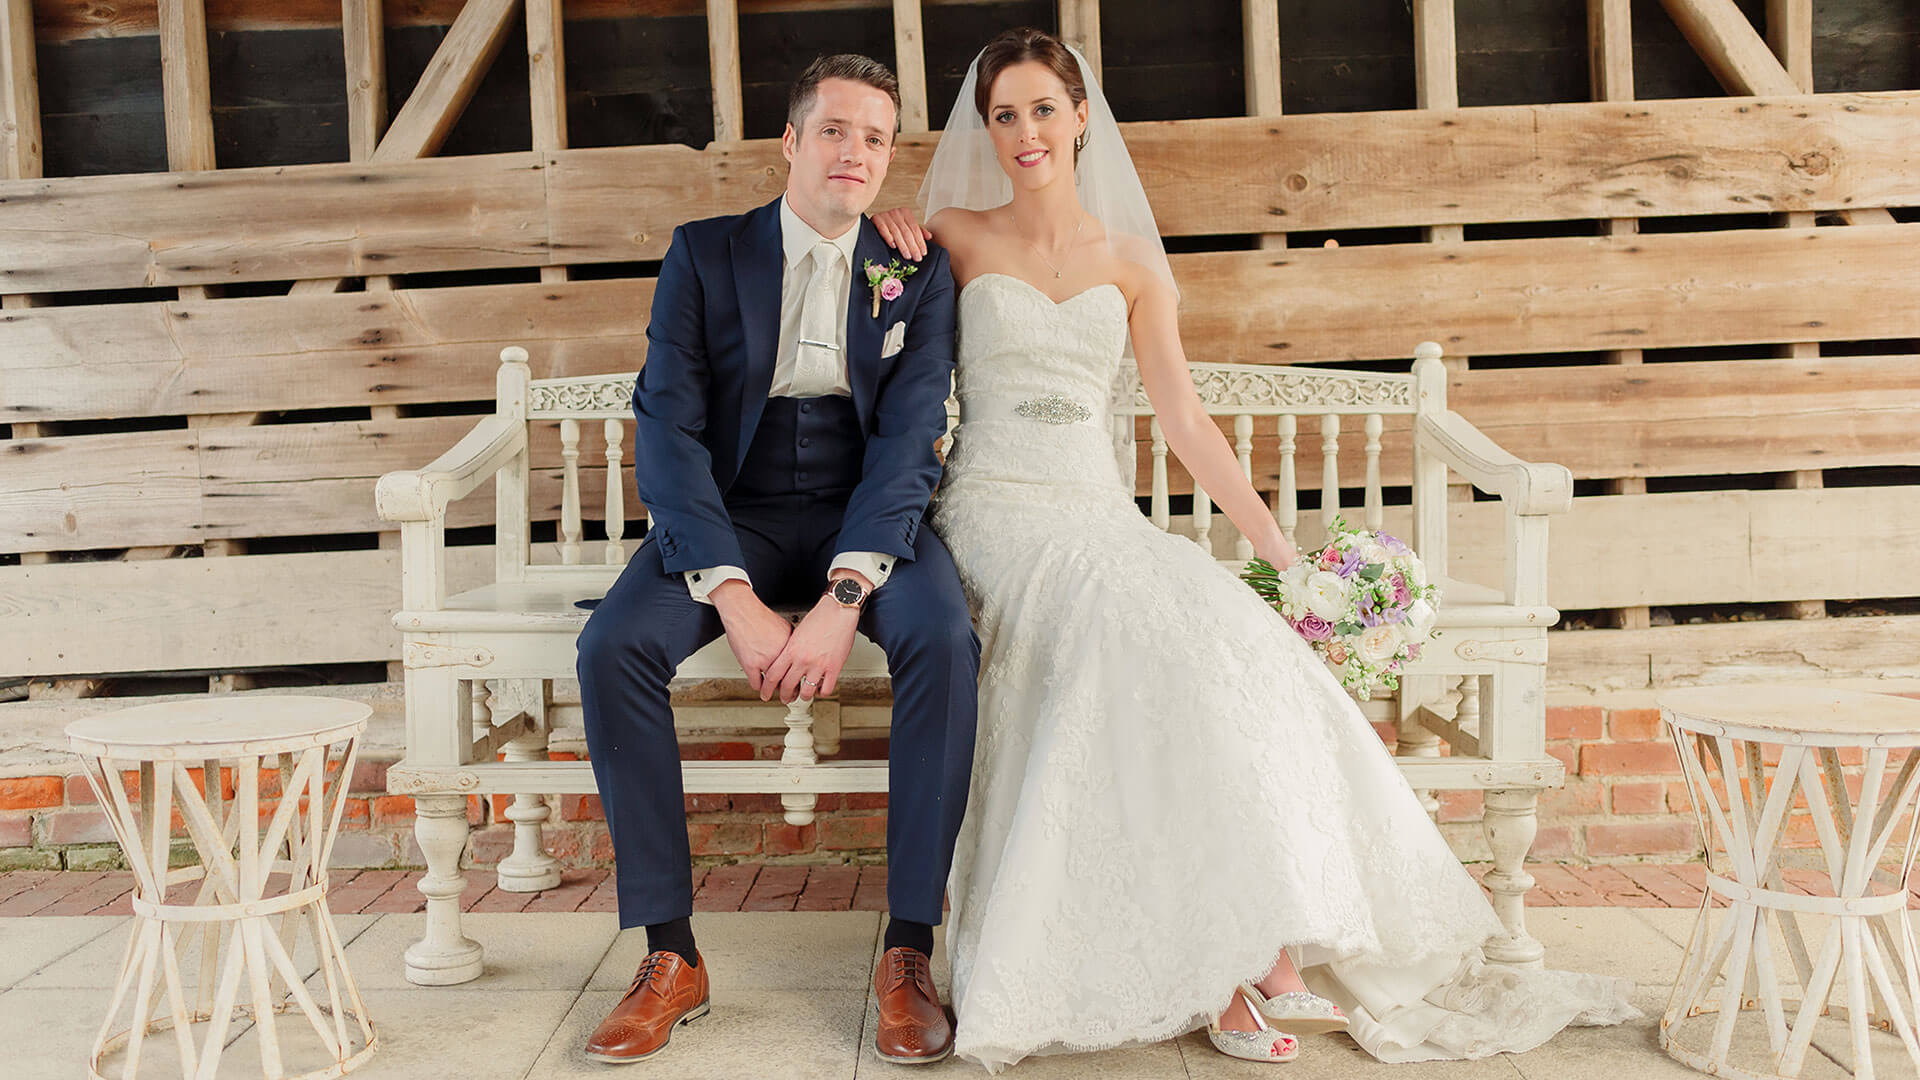 A bride and groom steal a moment on a white wedding bench - barn weddings Essex